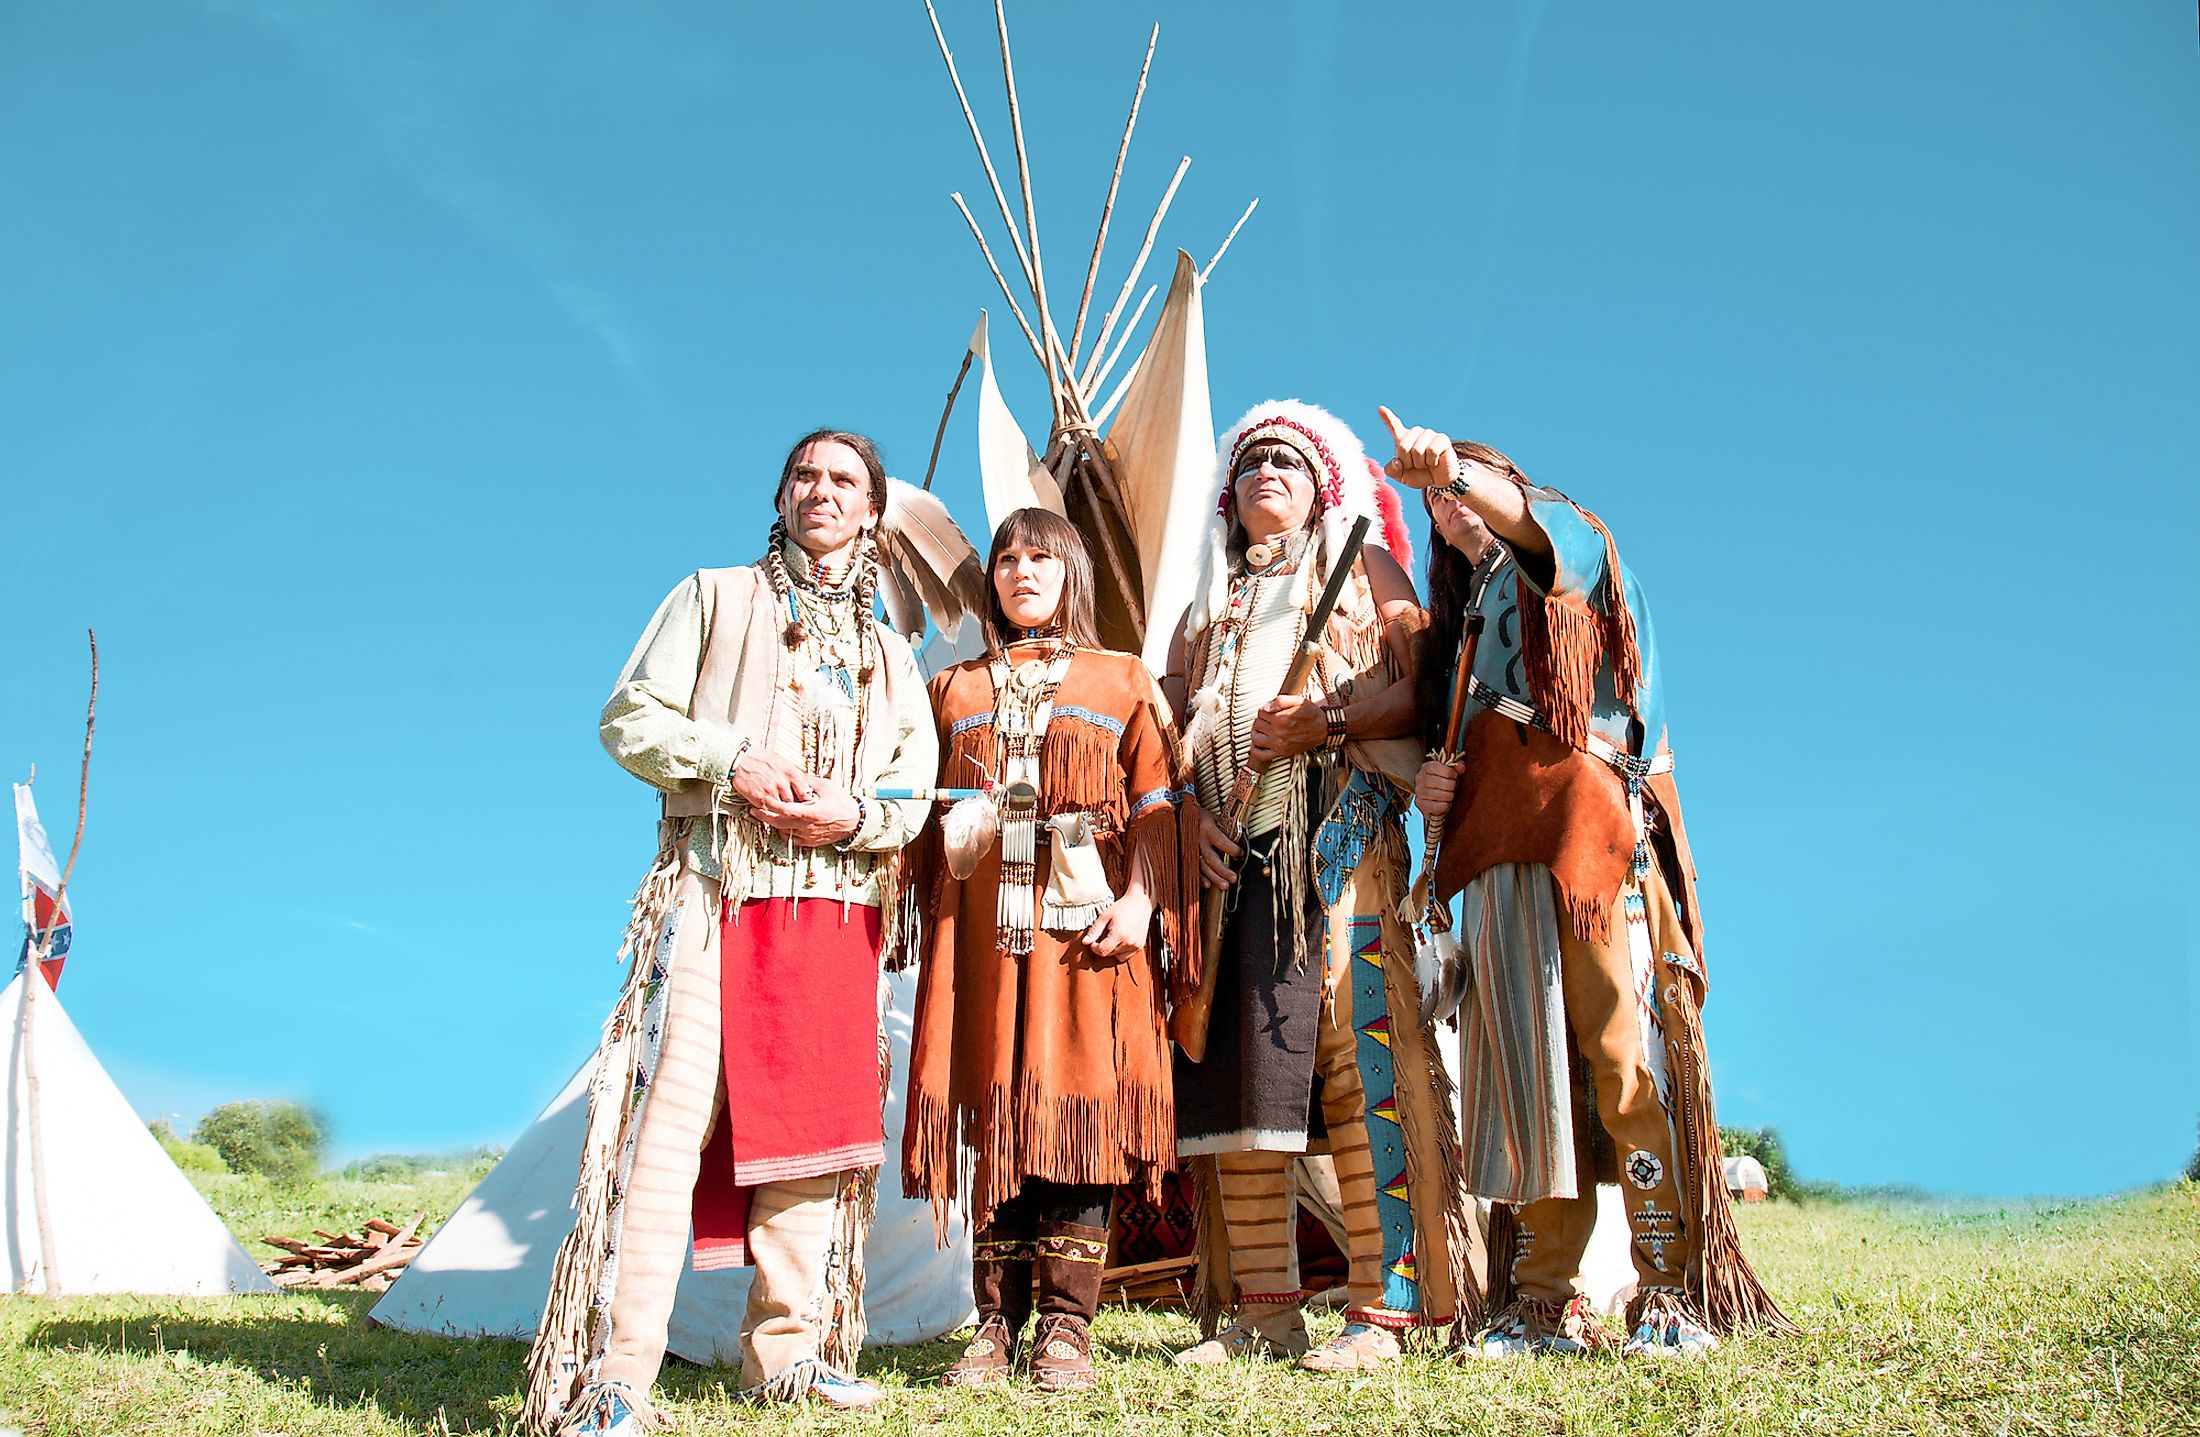 Group of North American Indians about a wigwam. Image credit: Shchipkova Elena/Shutterstock.com